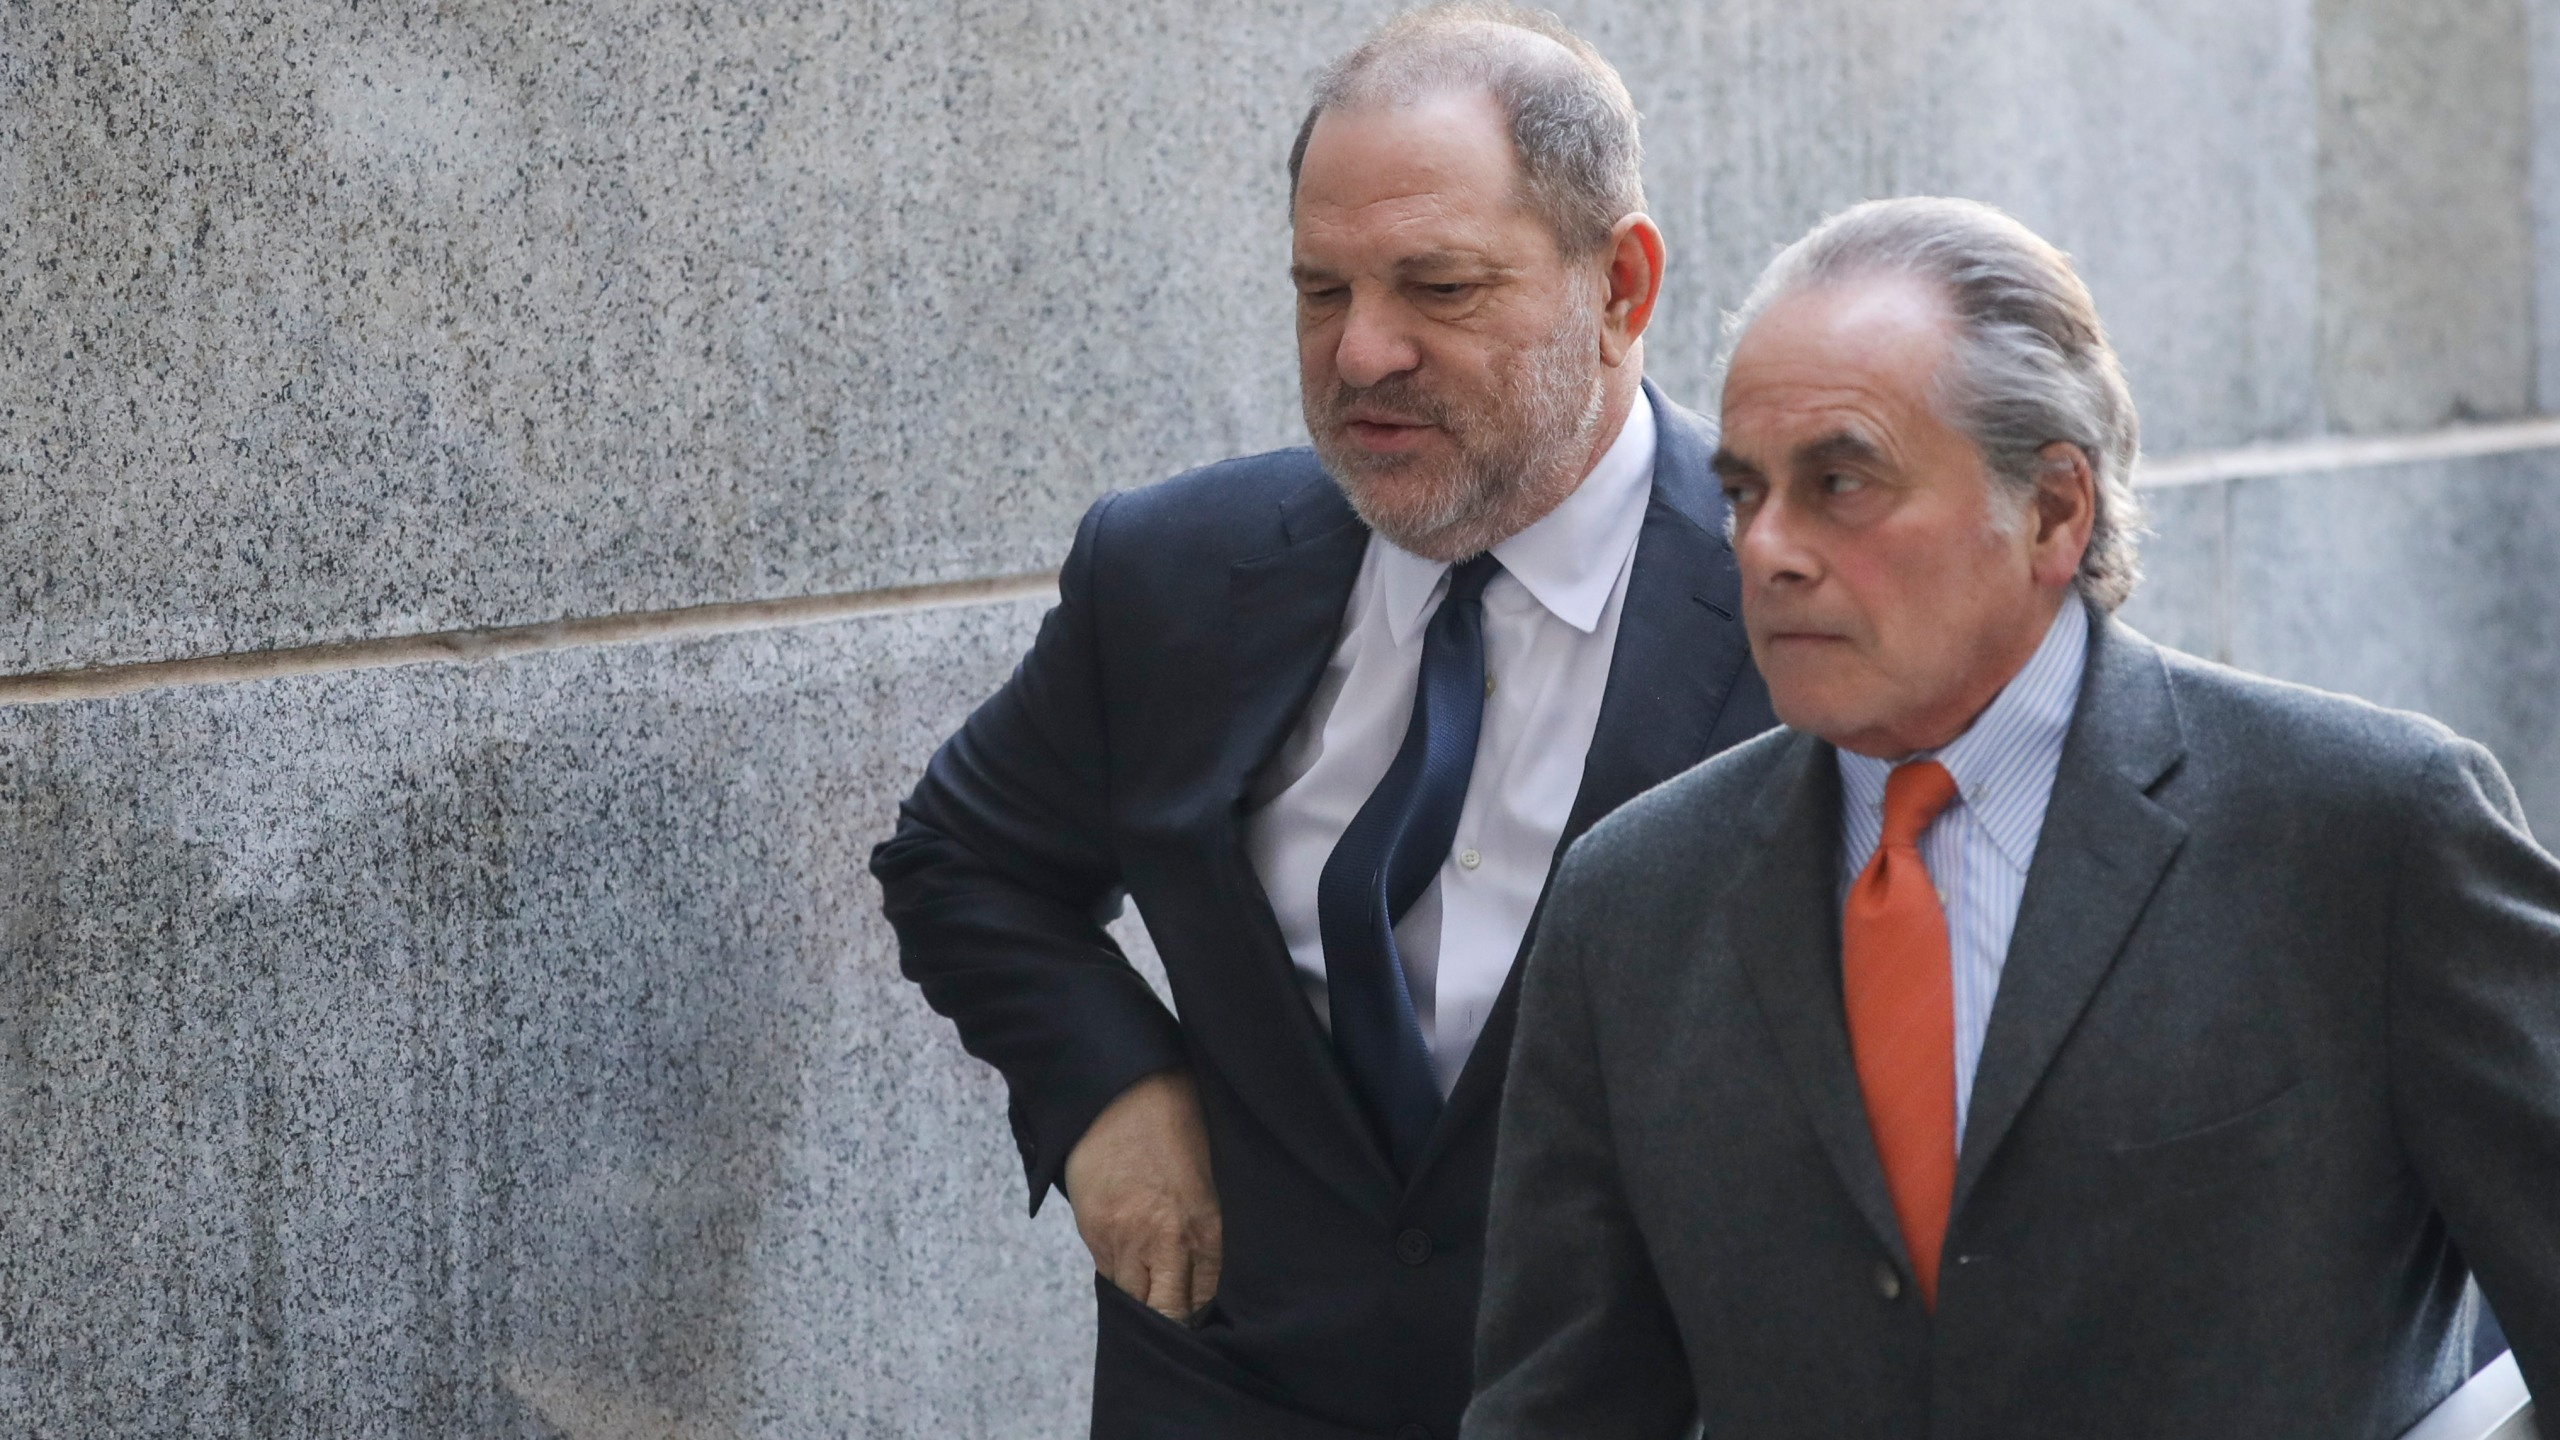 Harvey Weinstein arrives with his lawyer Ben Brafman for a court hearing at New York Criminal Court on Dec. 20, 2018. (Credit: Drew Angerer/Getty Images)